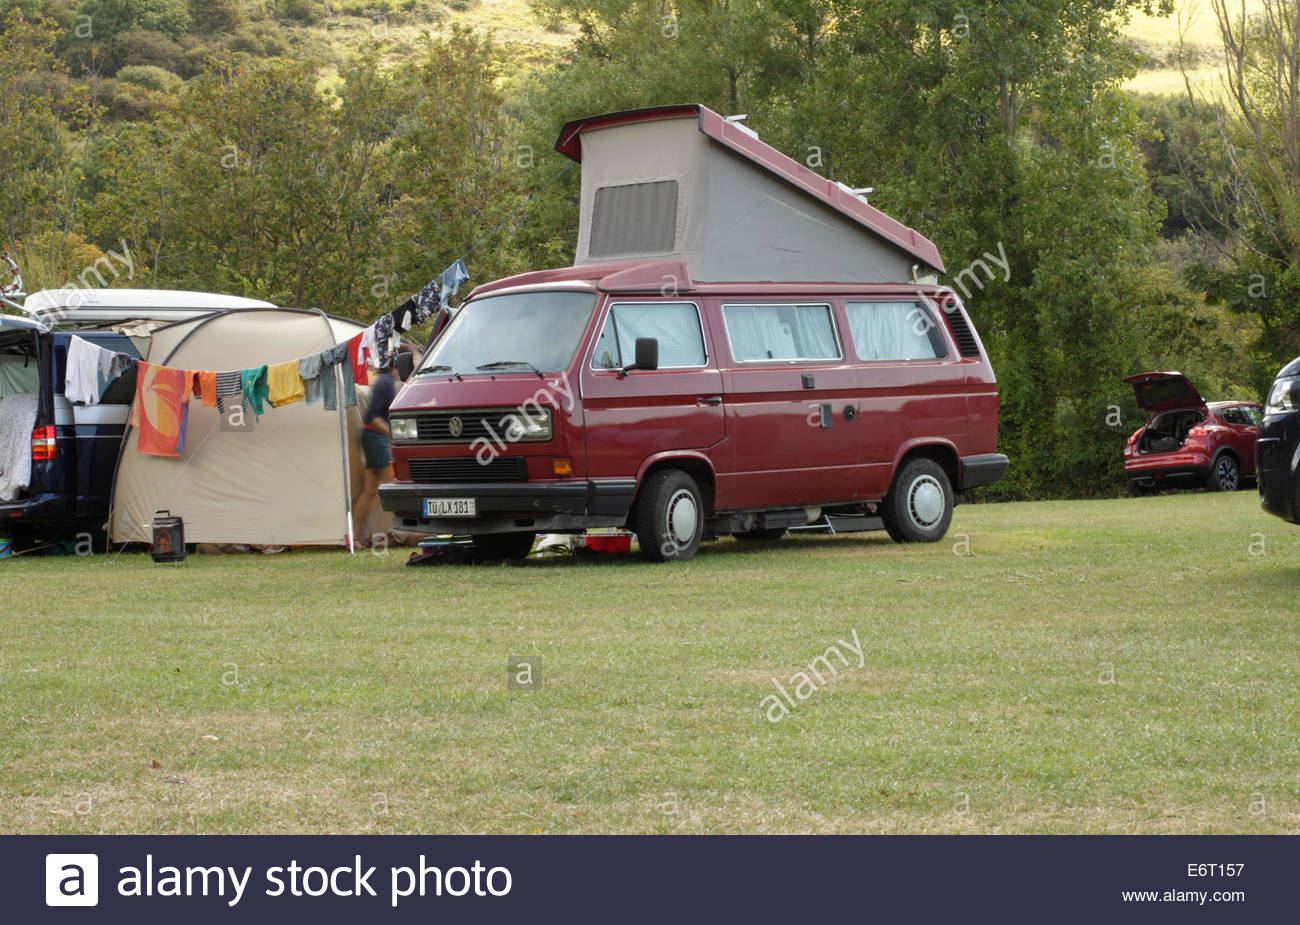 VW Campervan on Campsite, Osmington Mills, Dorset, England, UK - Stock Image